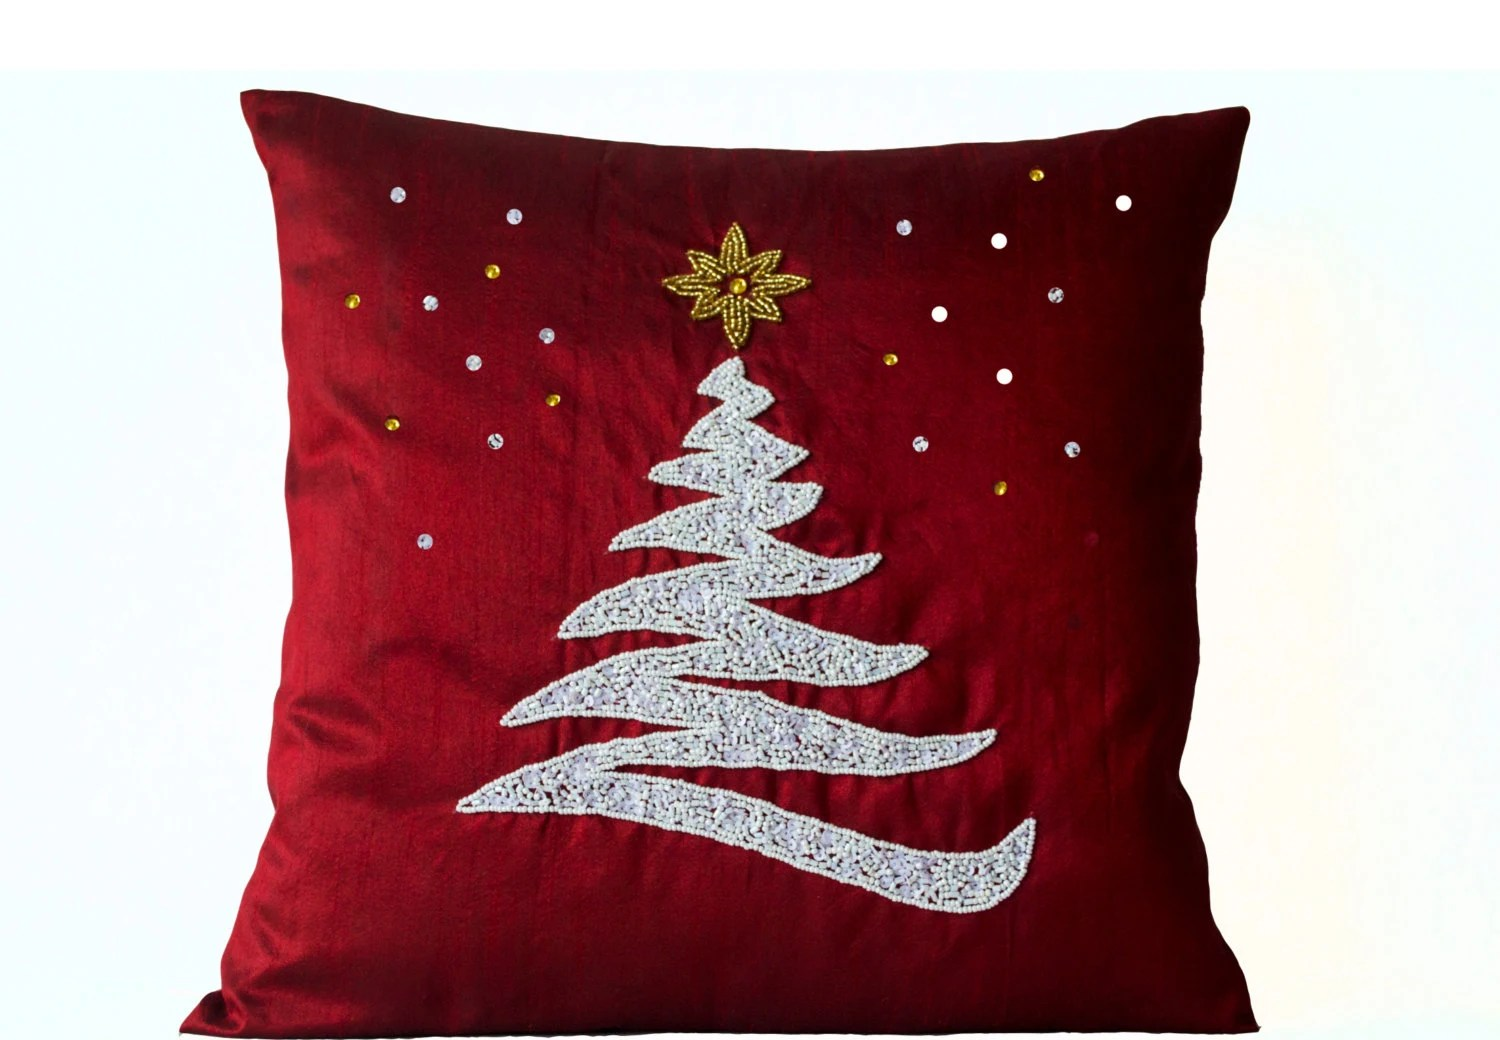 Cushion Covers Christmas Decorative Pillow Cover Christmas Pillow Red Silk By